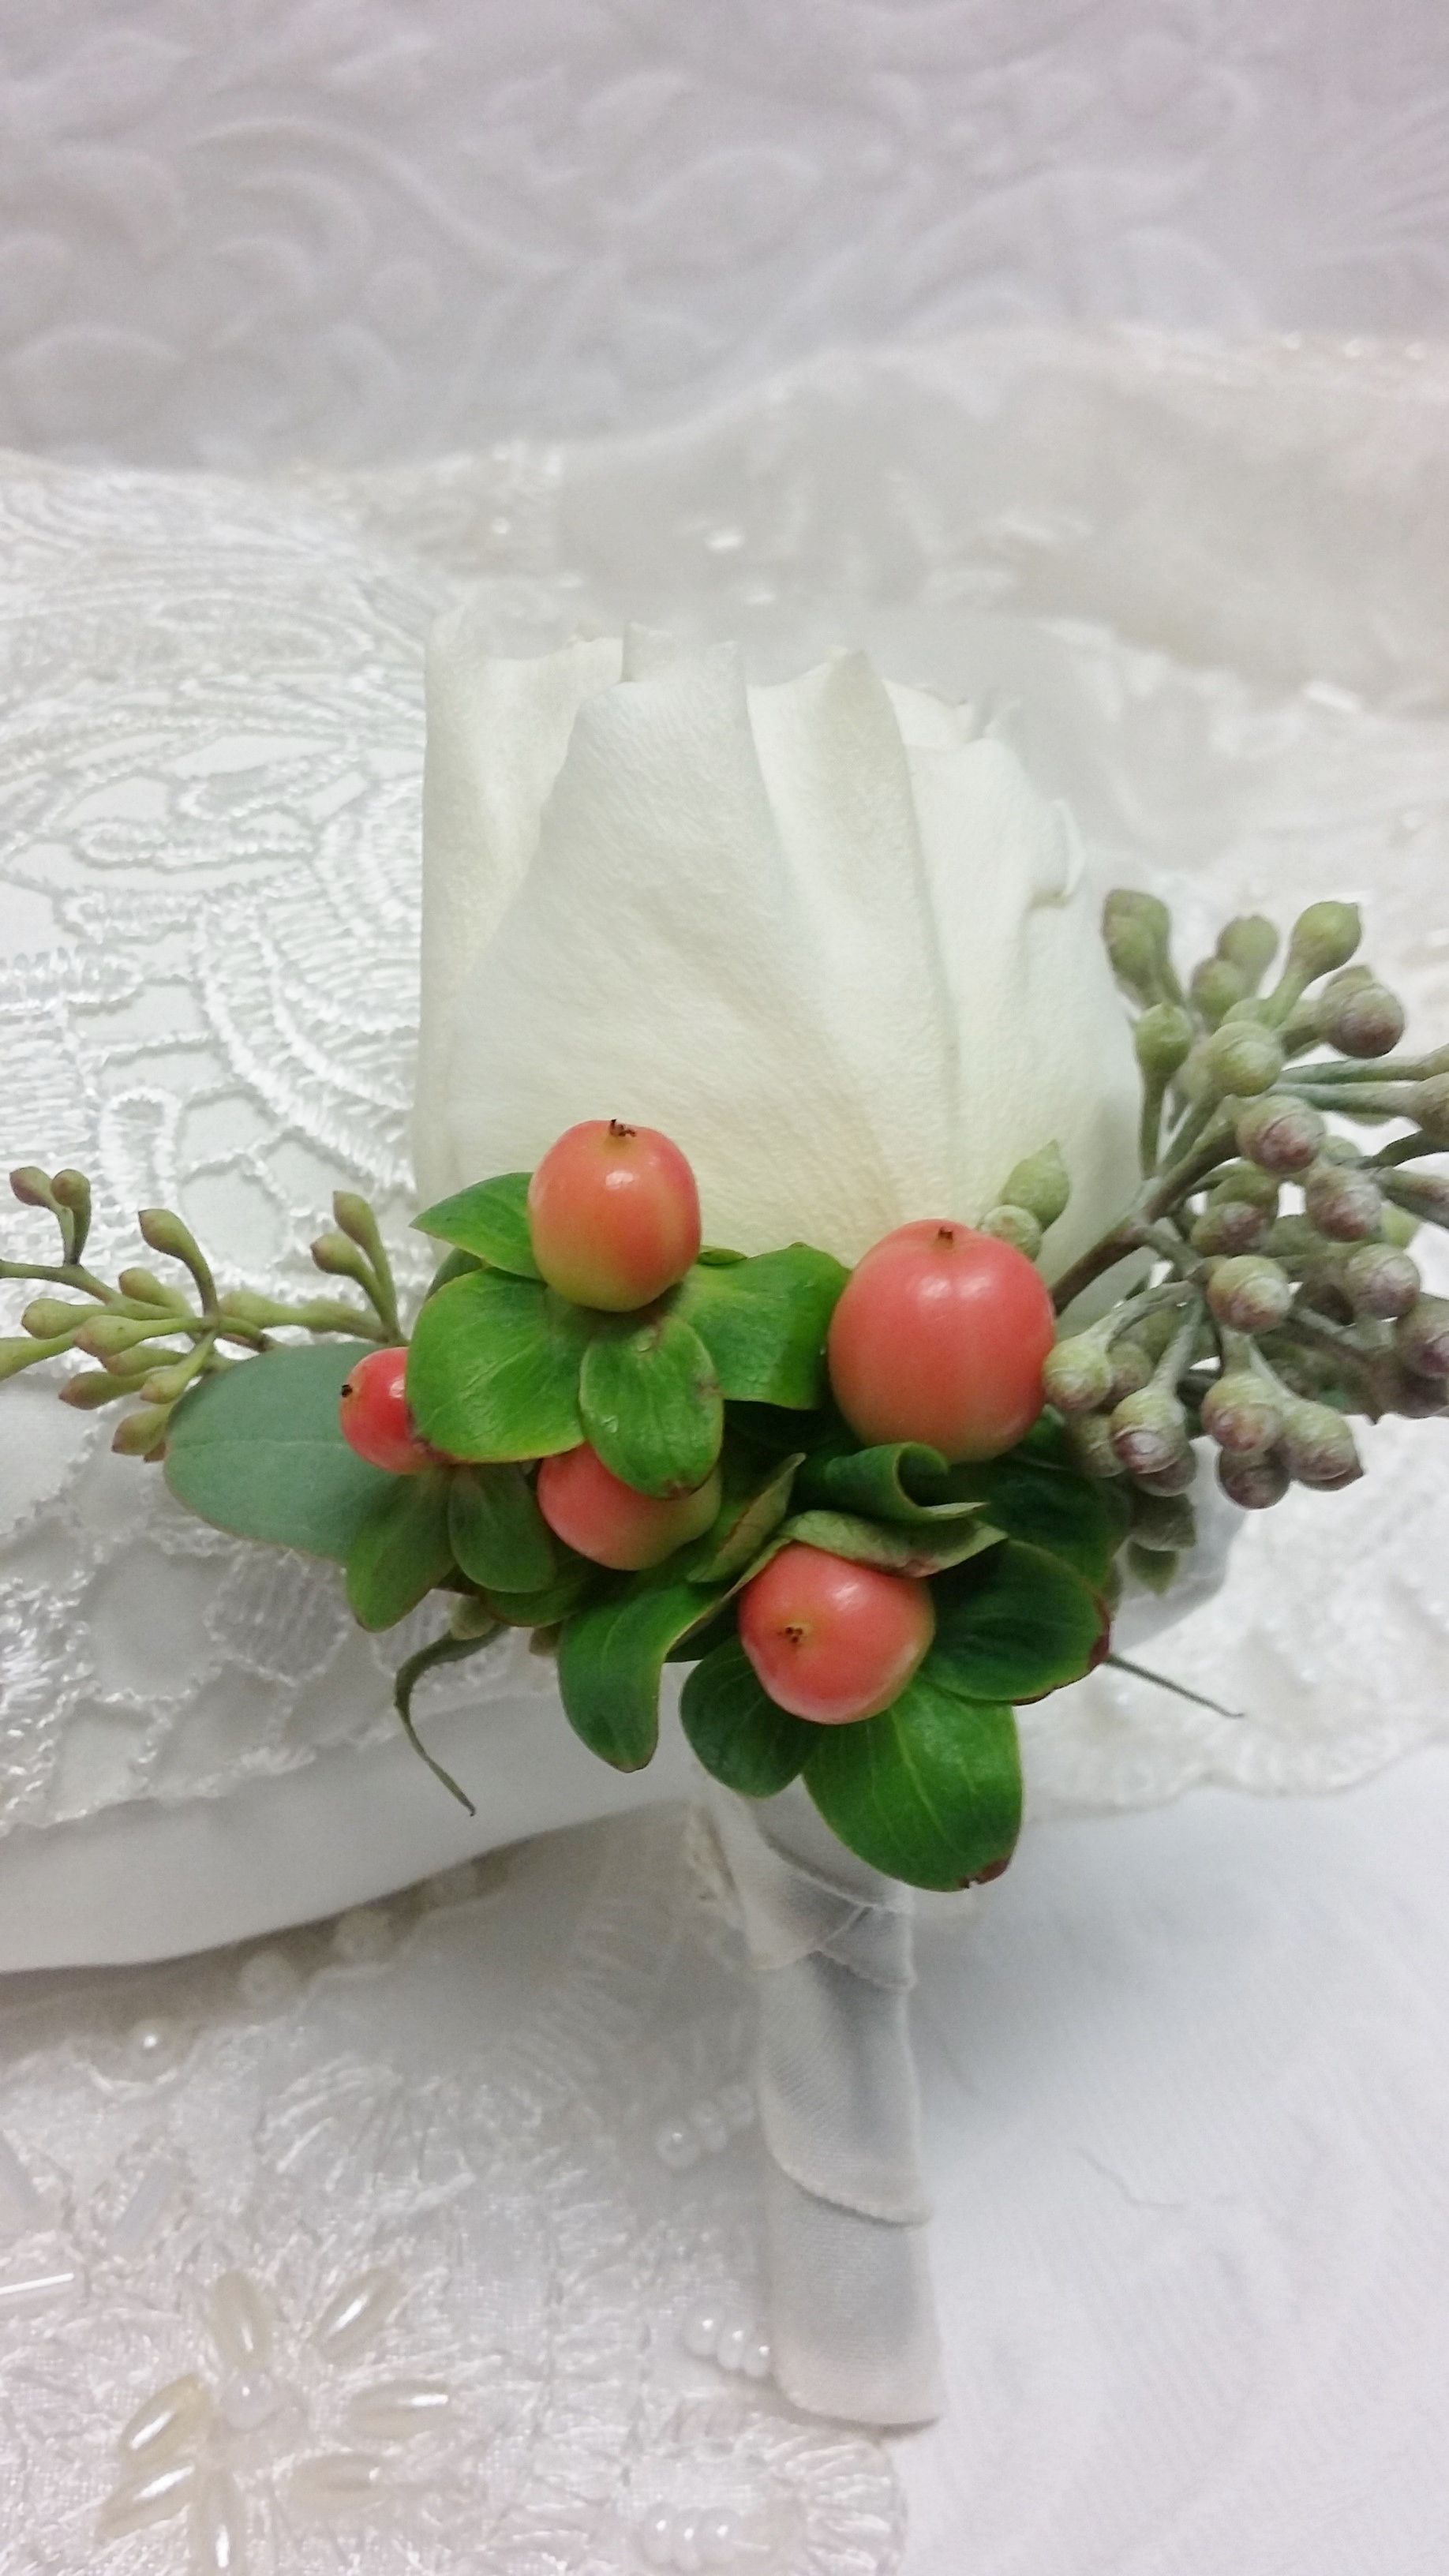 White Garden Rose Boutonniere white garden rose boutonniere with coral hypericum berries and